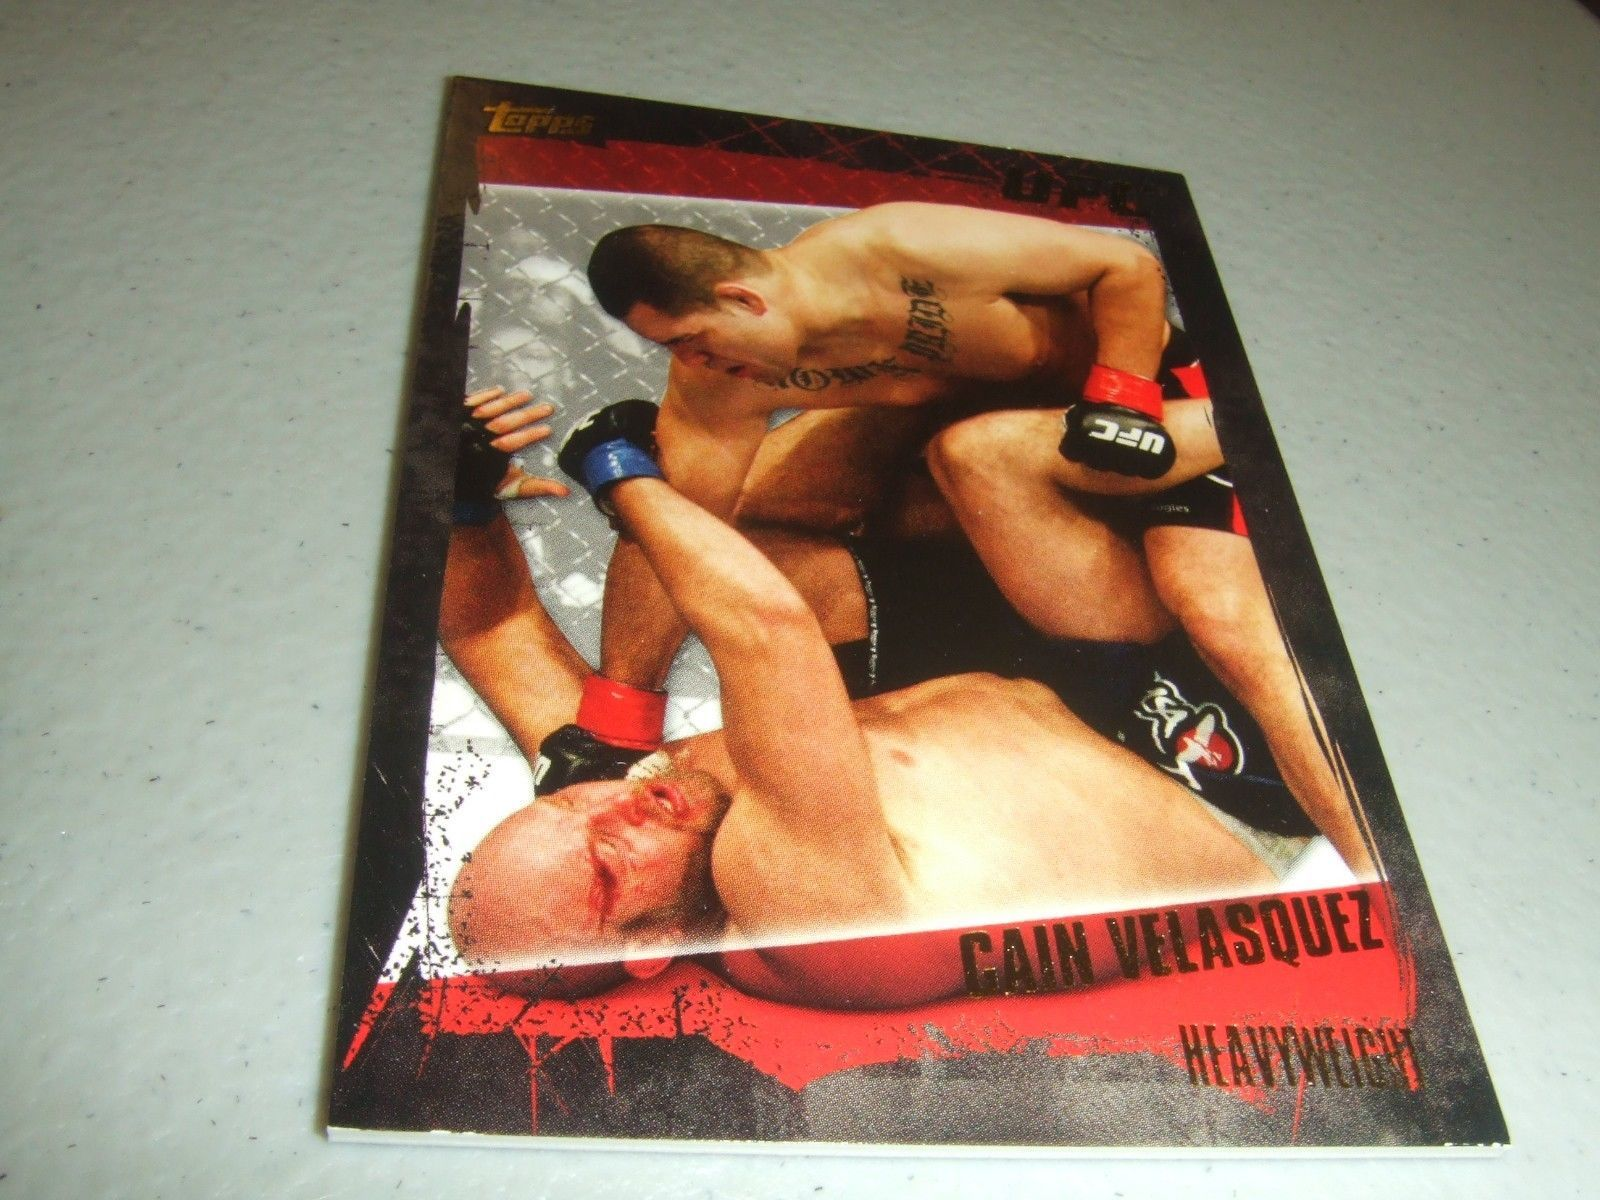 Primary image for 2010 Topps UFC Series 4 #92 GOLD Cain Velasquez